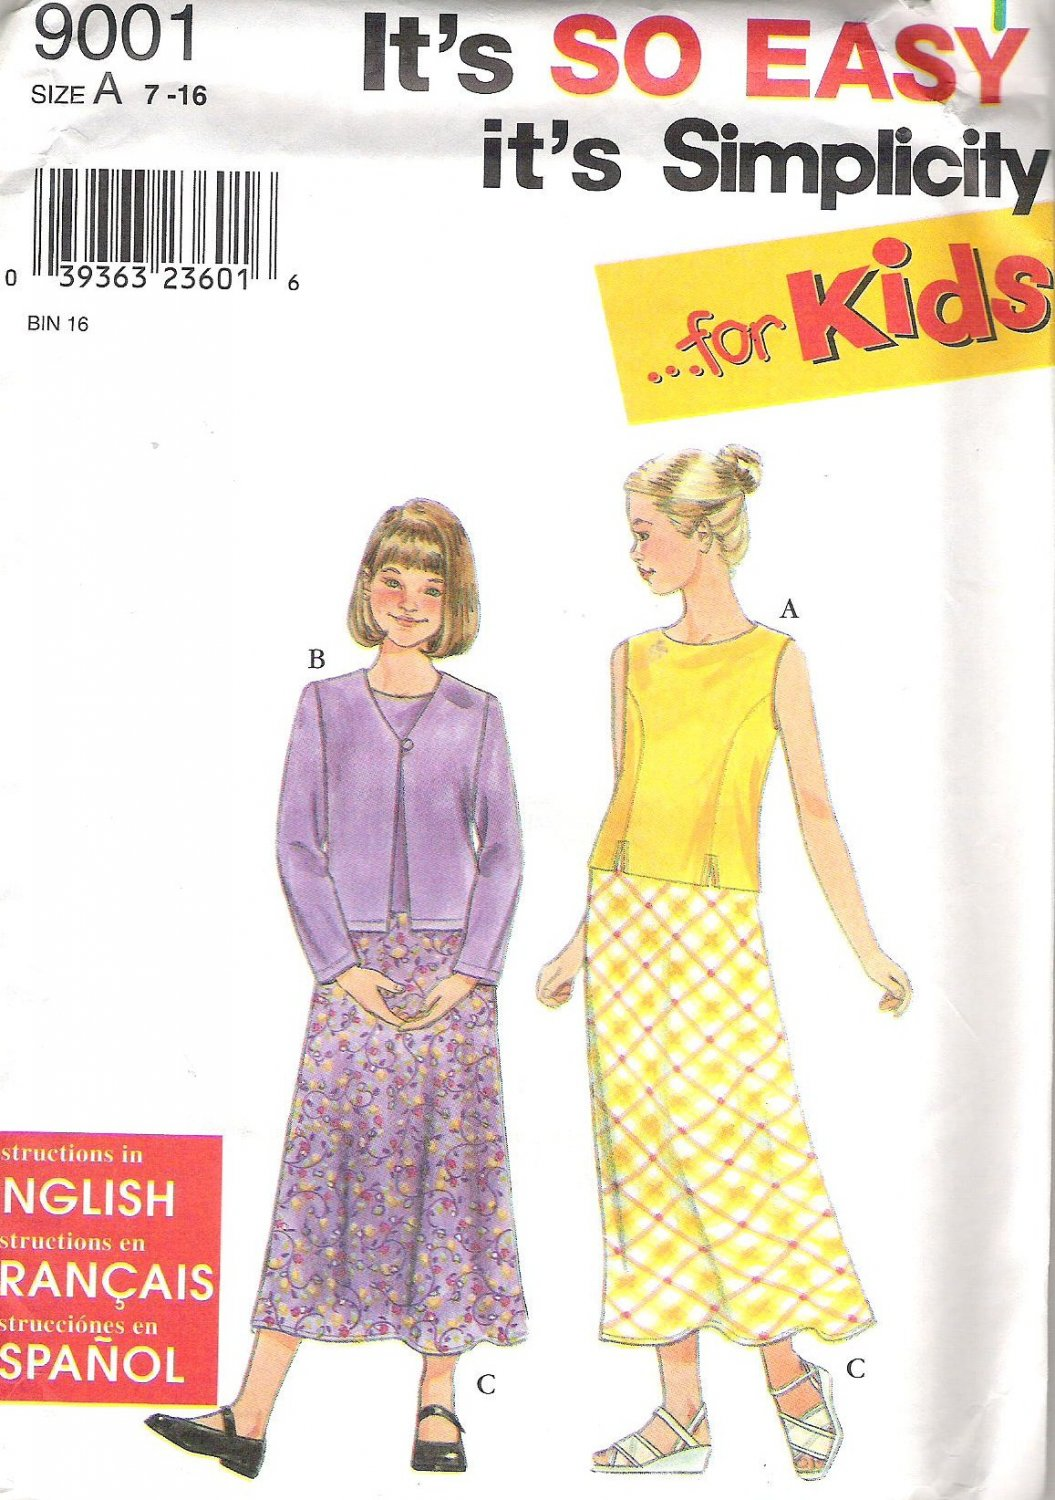 1999 Simplicity 9001Pattern Girls Top Jacket Skirt  Size 7, 8, 10, 12, 14,16  Uncut